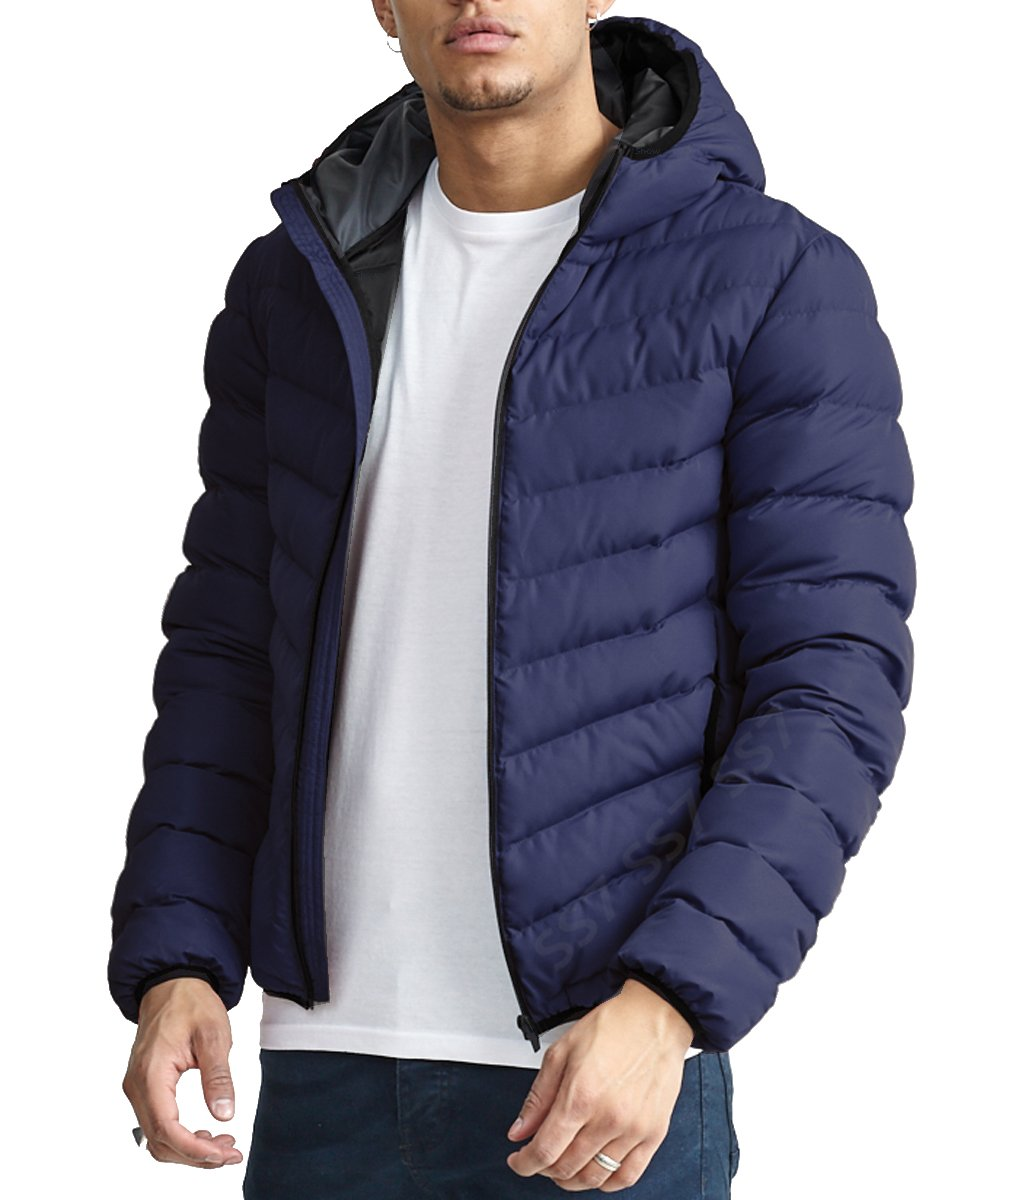 SS7 Boys Quilted Padded Coat, Black, Navy, Ages 7 To 13